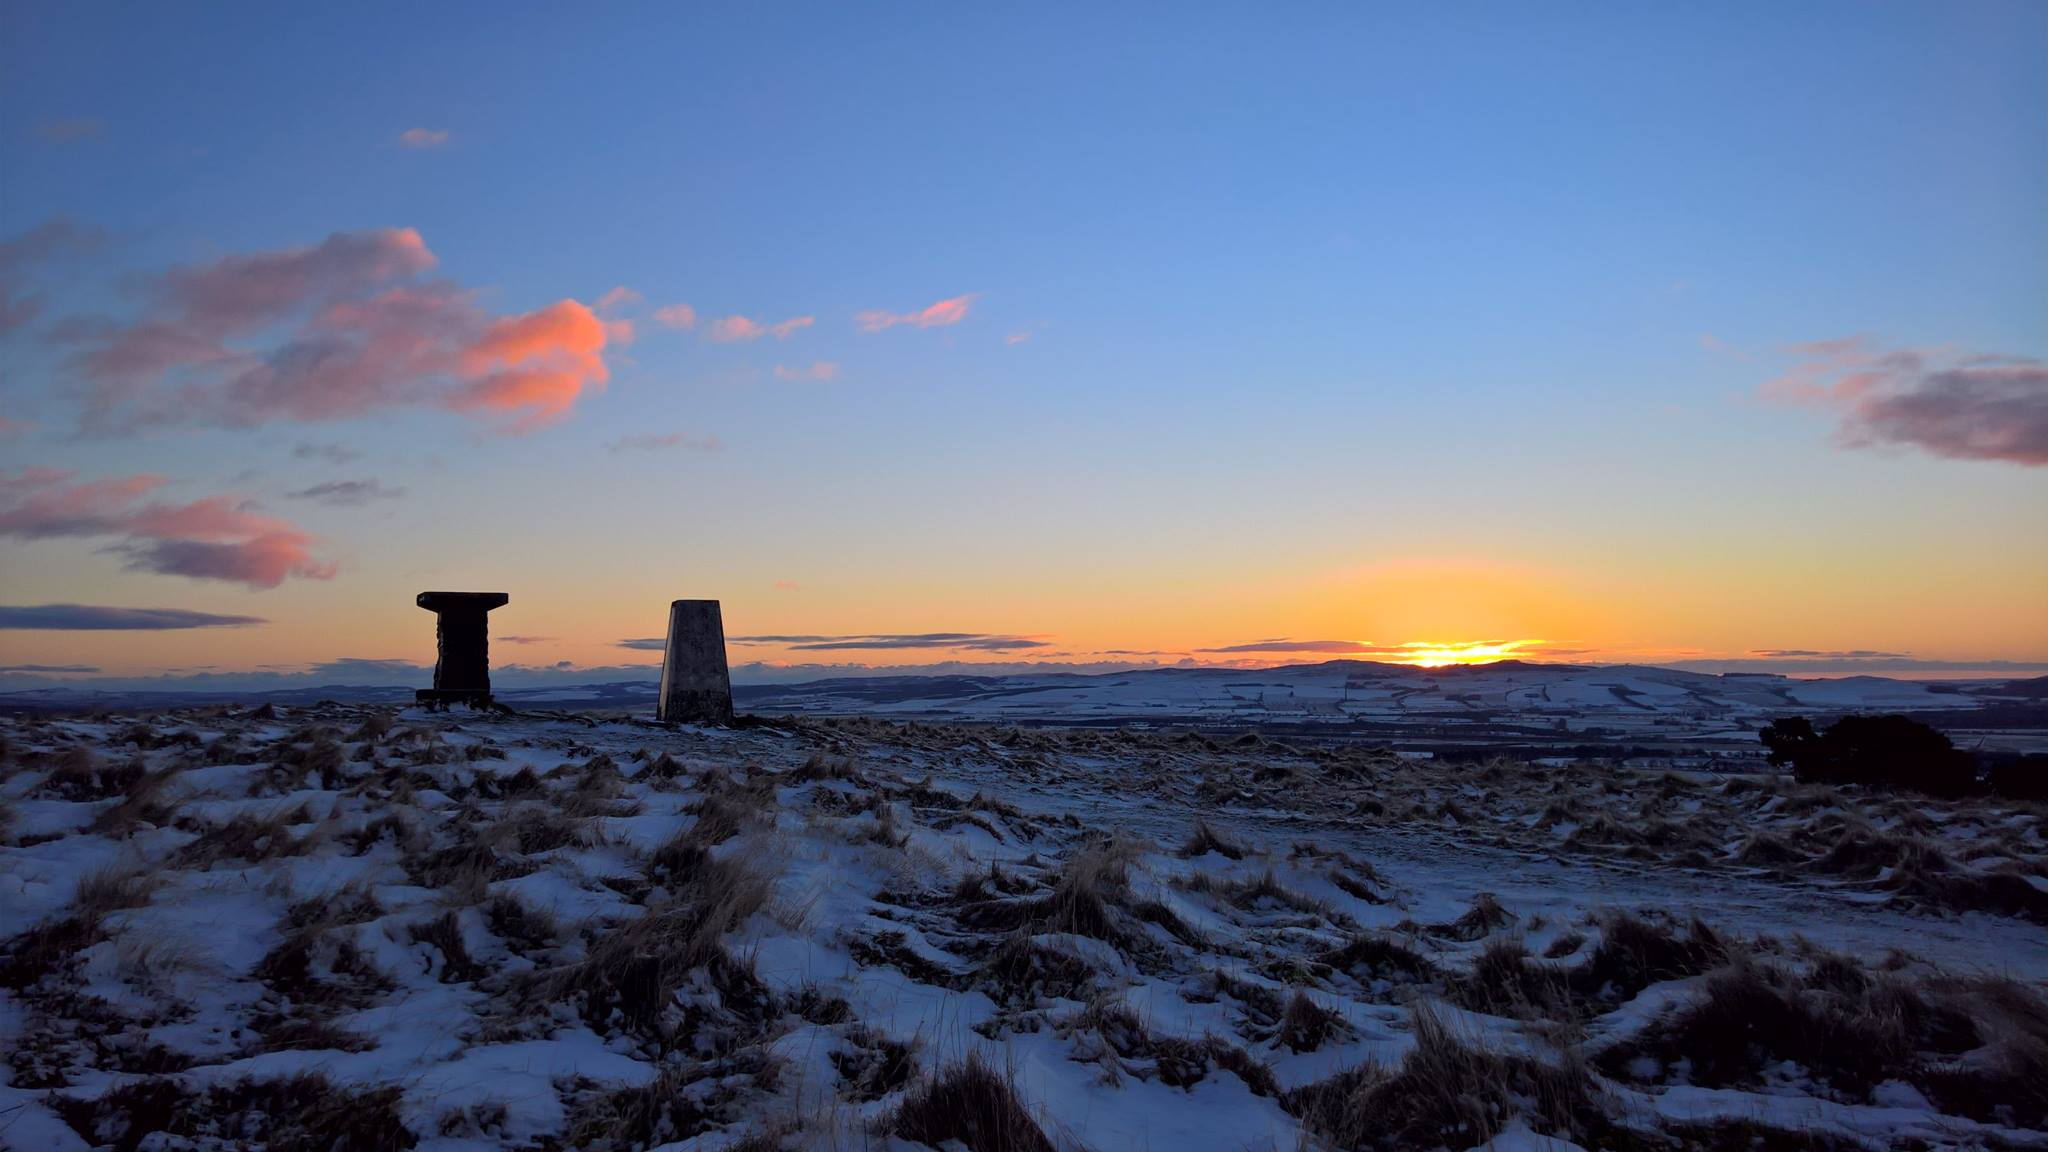 A view of the sunset from the summit of Alyth Hill.